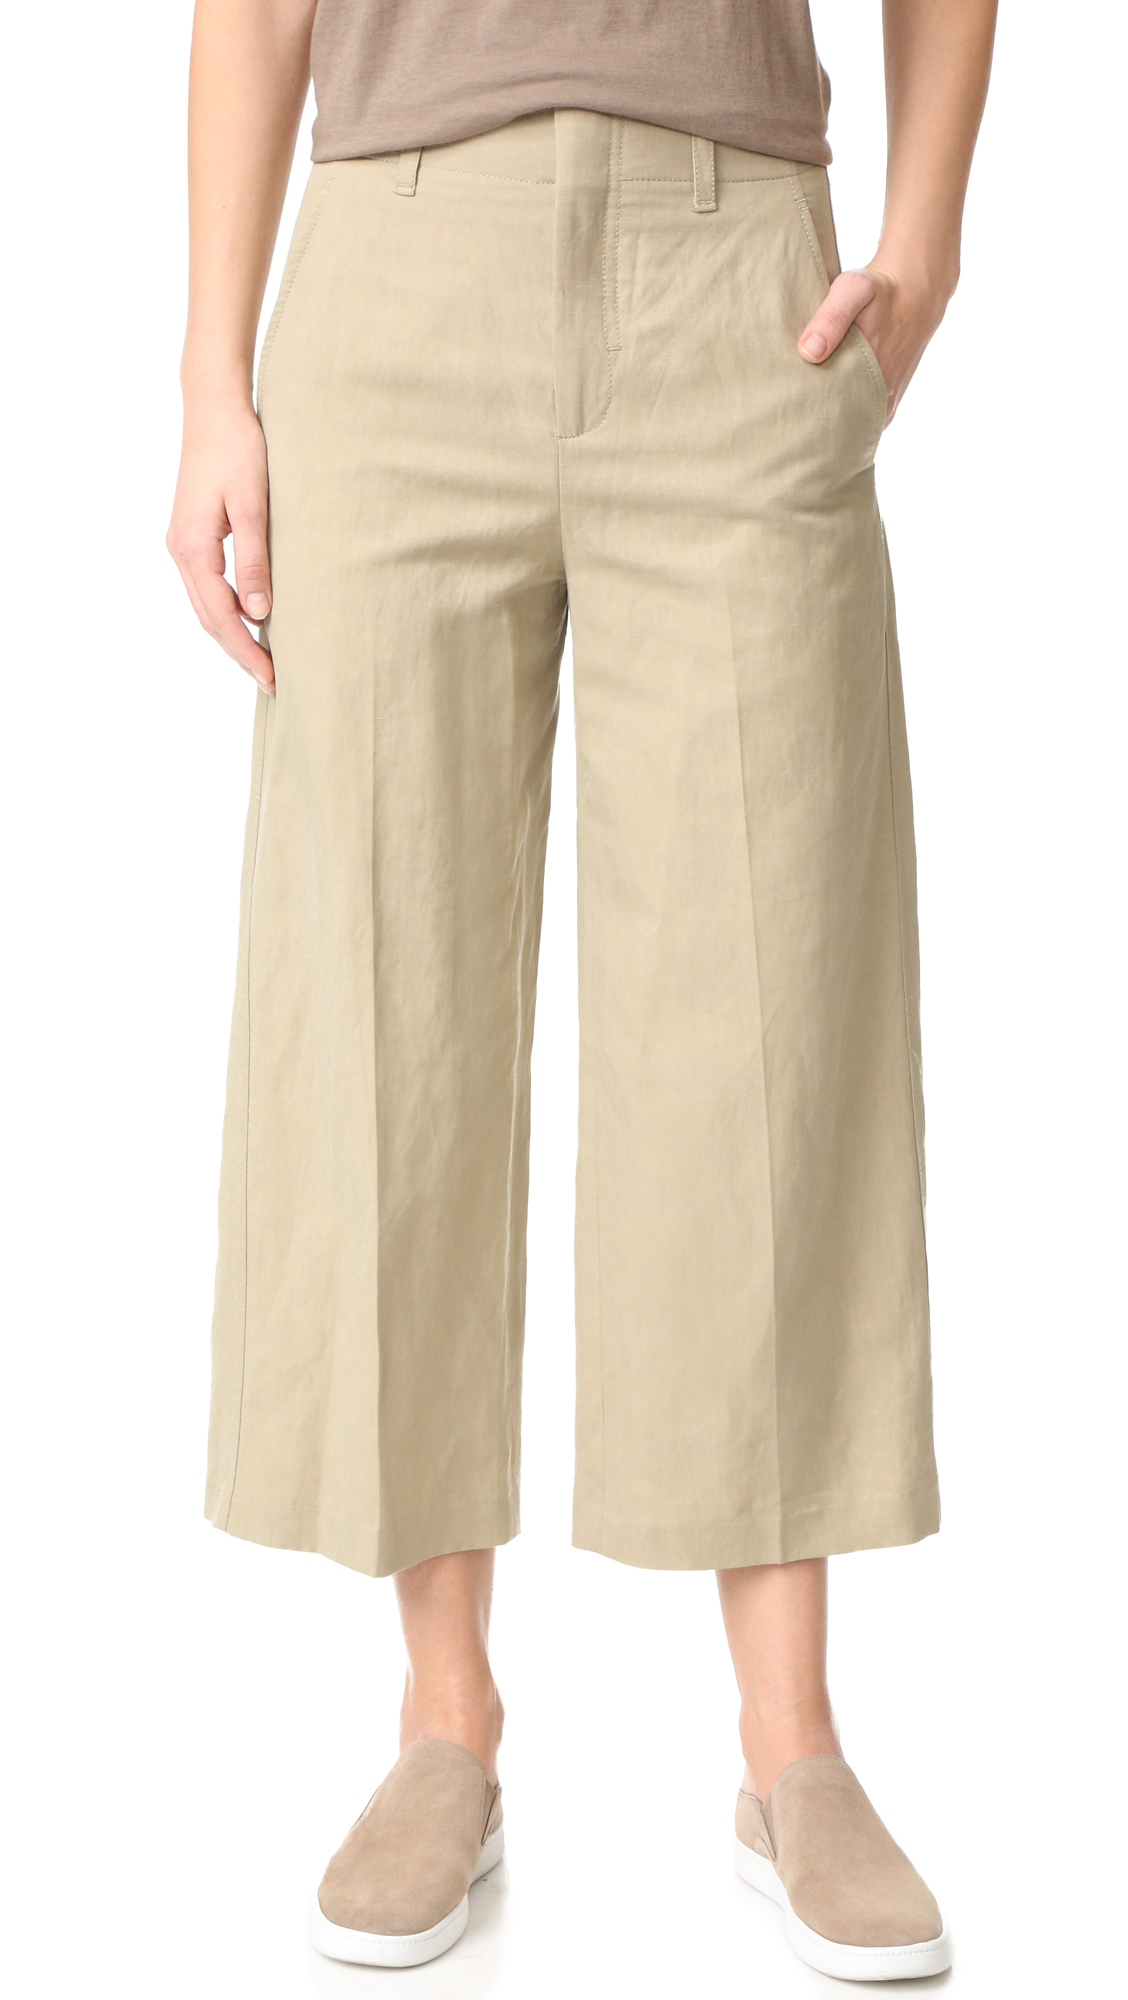 Vince High Waisted Crop Pants - Mushroom at Shopbop